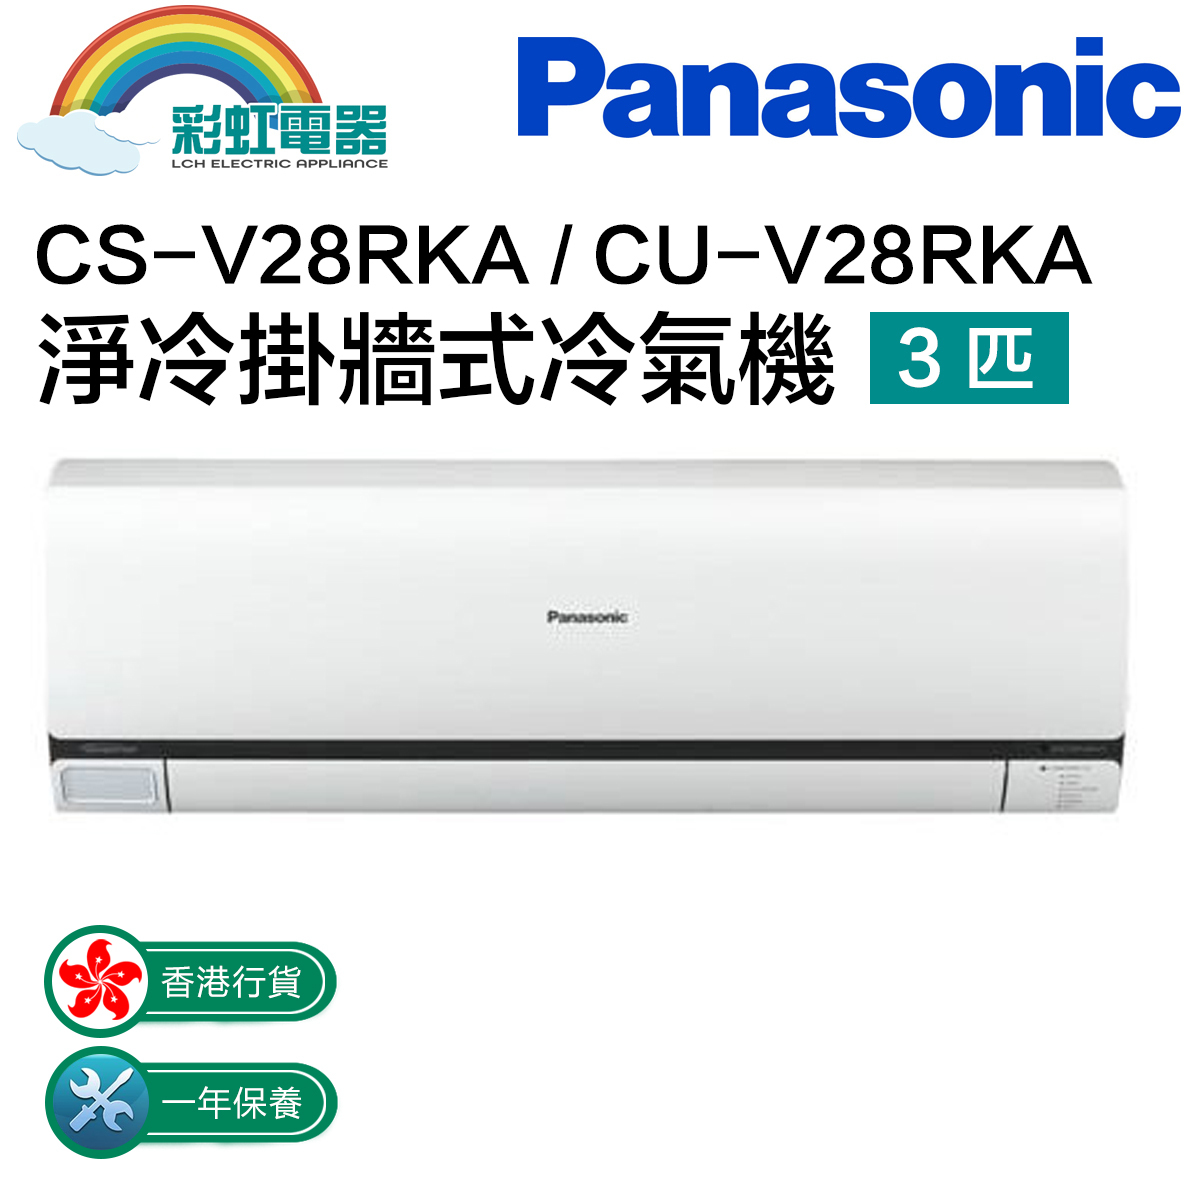 CS-V28RKA / CU-V28RKA net cooling wall type air conditioner 3 pieces (wireless remote control)